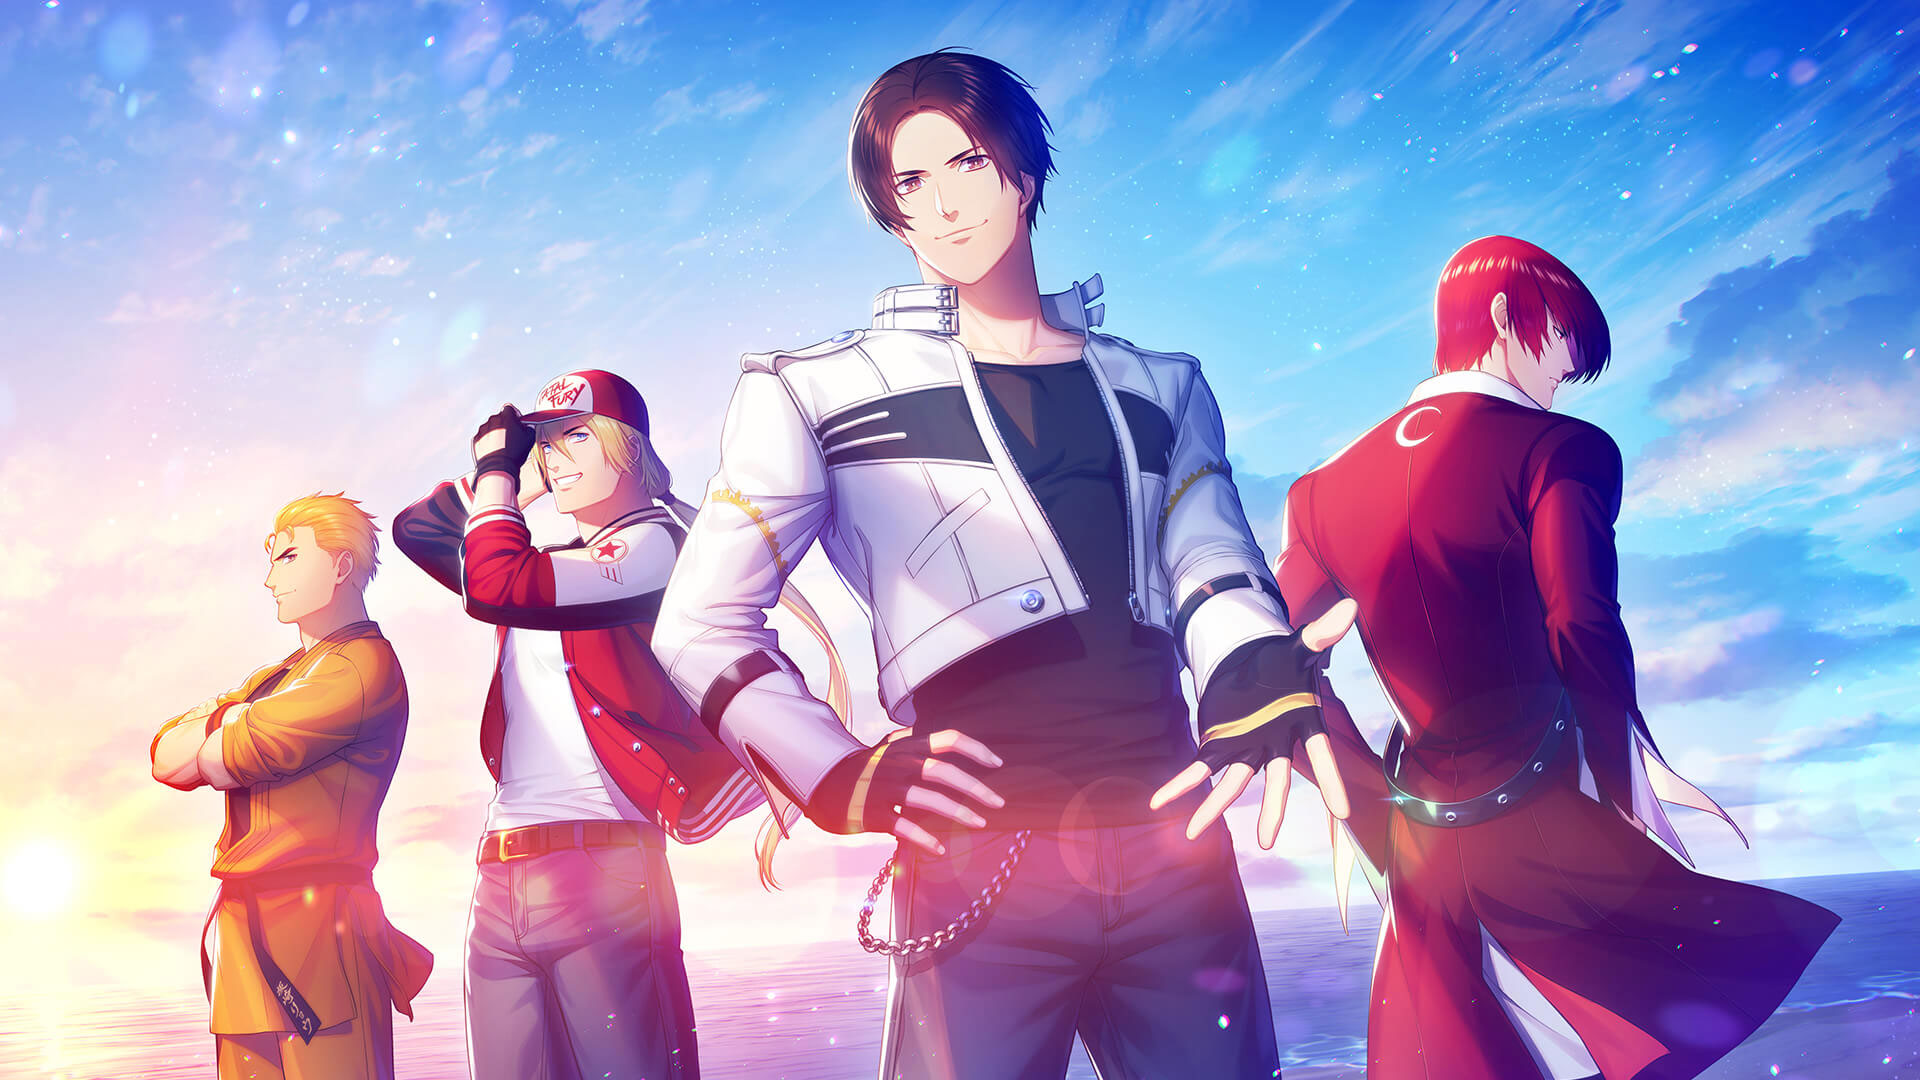 Quot The King Of Fighters For Girls Quot Official Character Artwork